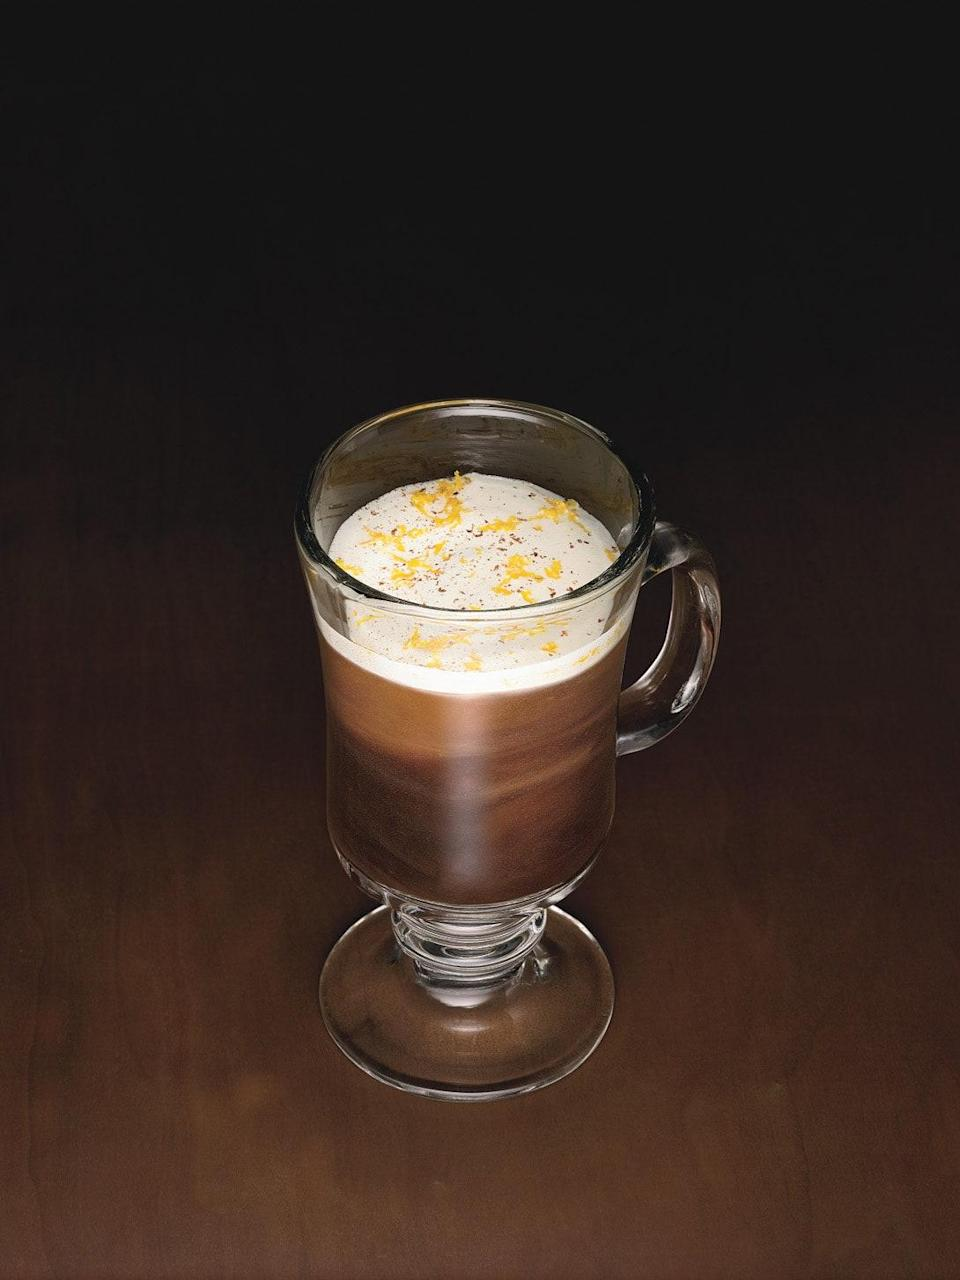 """This spiked coffee from Brooklyn's Fort Defiance is laced with dark rum, Cherry Heering liqueur, and brown sugar, with airy whisked cream on top. <a href=""""https://www.epicurious.com/recipes/food/views/koffie-van-brunt-355749?mbid=synd_yahoo_rss"""" rel=""""nofollow noopener"""" target=""""_blank"""" data-ylk=""""slk:See recipe."""" class=""""link rapid-noclick-resp"""">See recipe.</a>"""